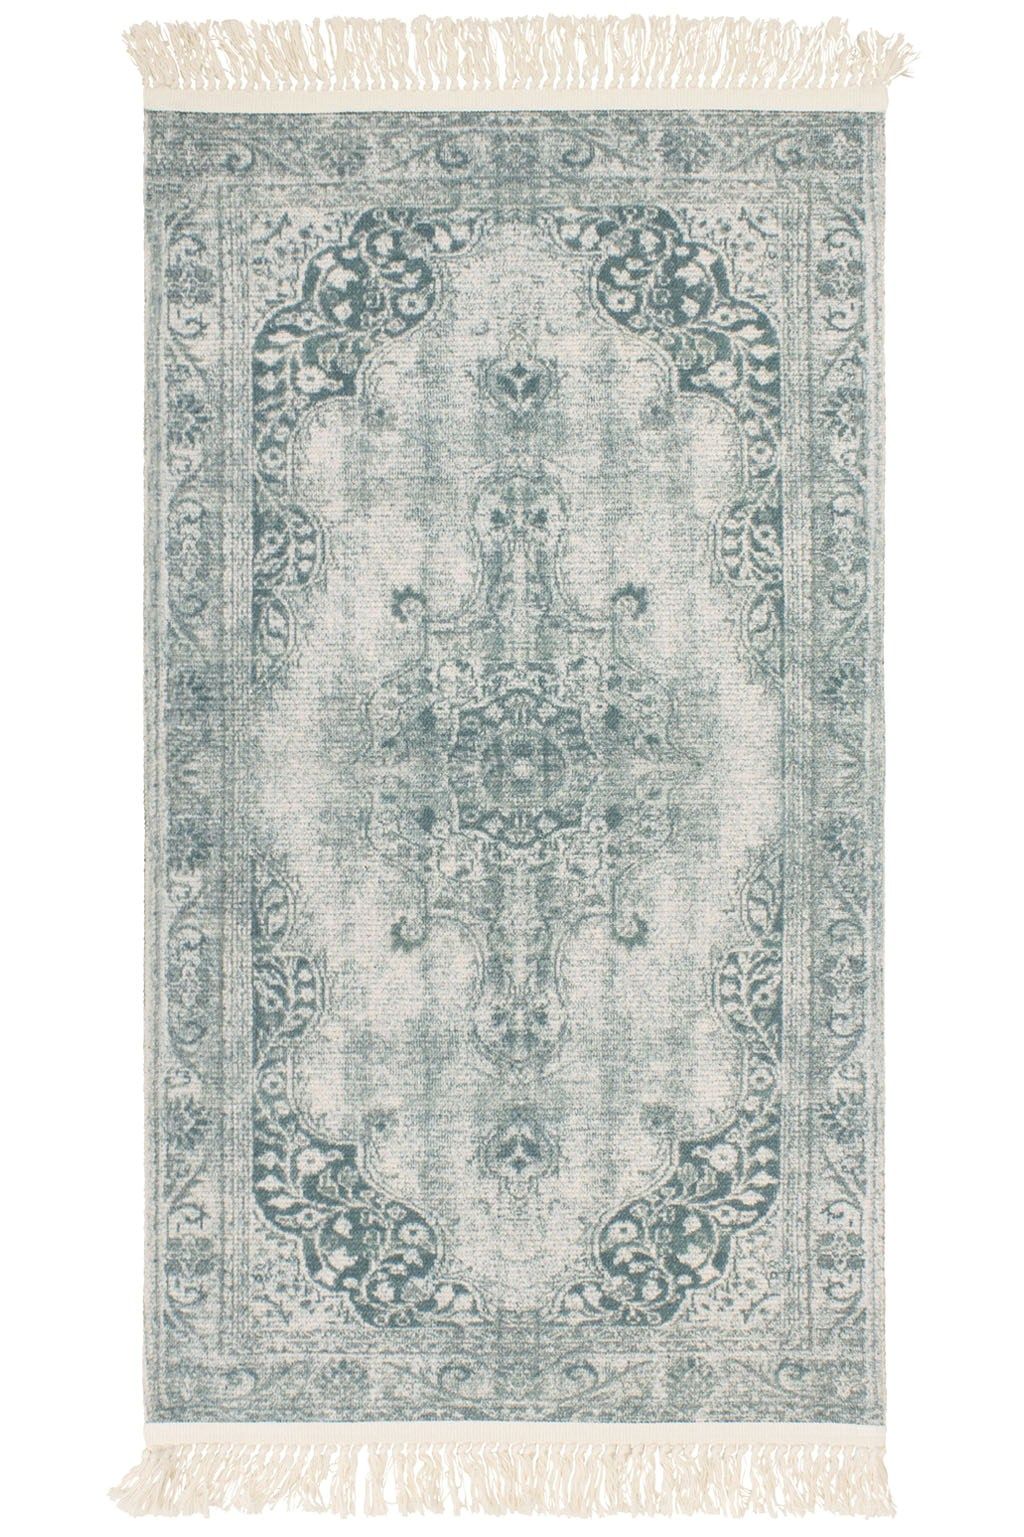 blush home decor.htm montana vegetable dye rug  26in x45in   collection french  montana vegetable dye rug  26in x45in